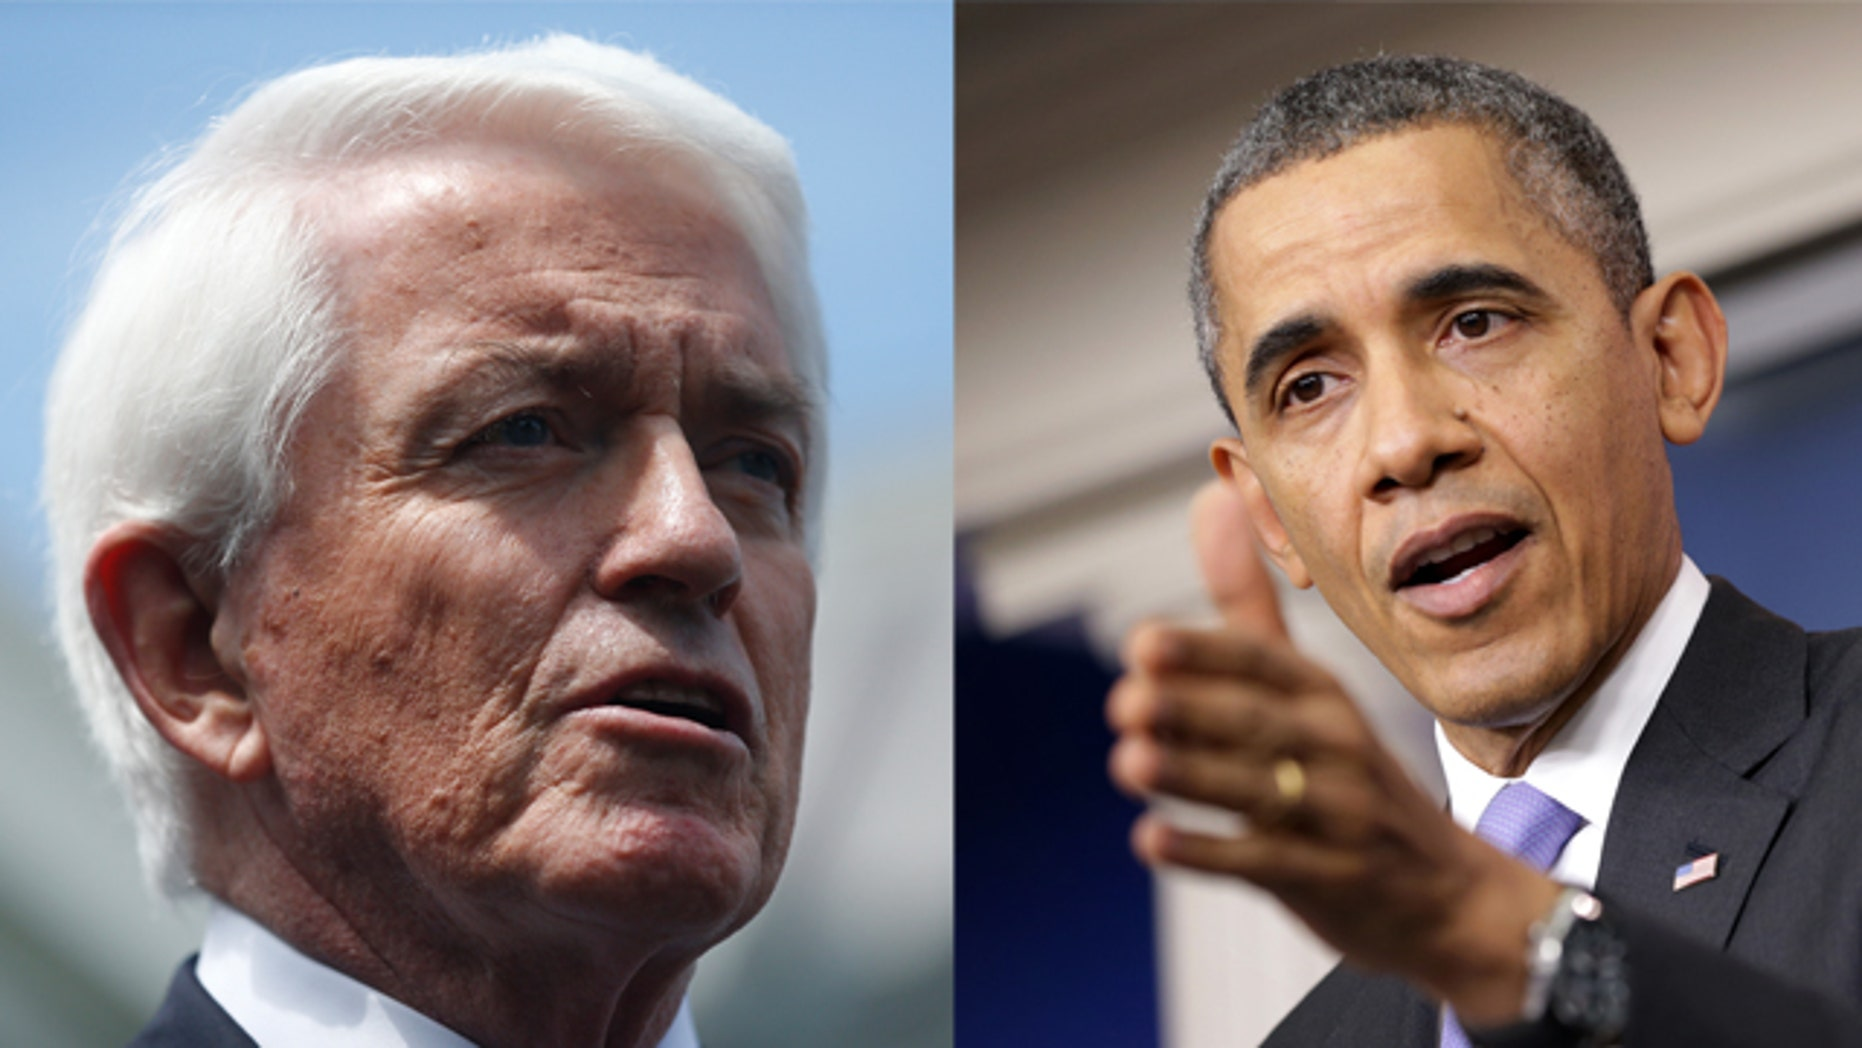 "(left) In this June 11, 2013 file photo, US Chamber of Commerce President Tom Donohue speaks to reporters outside the White House in Washington. Donohue says the nation's biggest business lobby intends to ""pull out all the stops"" to pass an overhaul of immigration laws. (Right) President Barack Obama. (AP Photo/Charles Dharapak, File)"